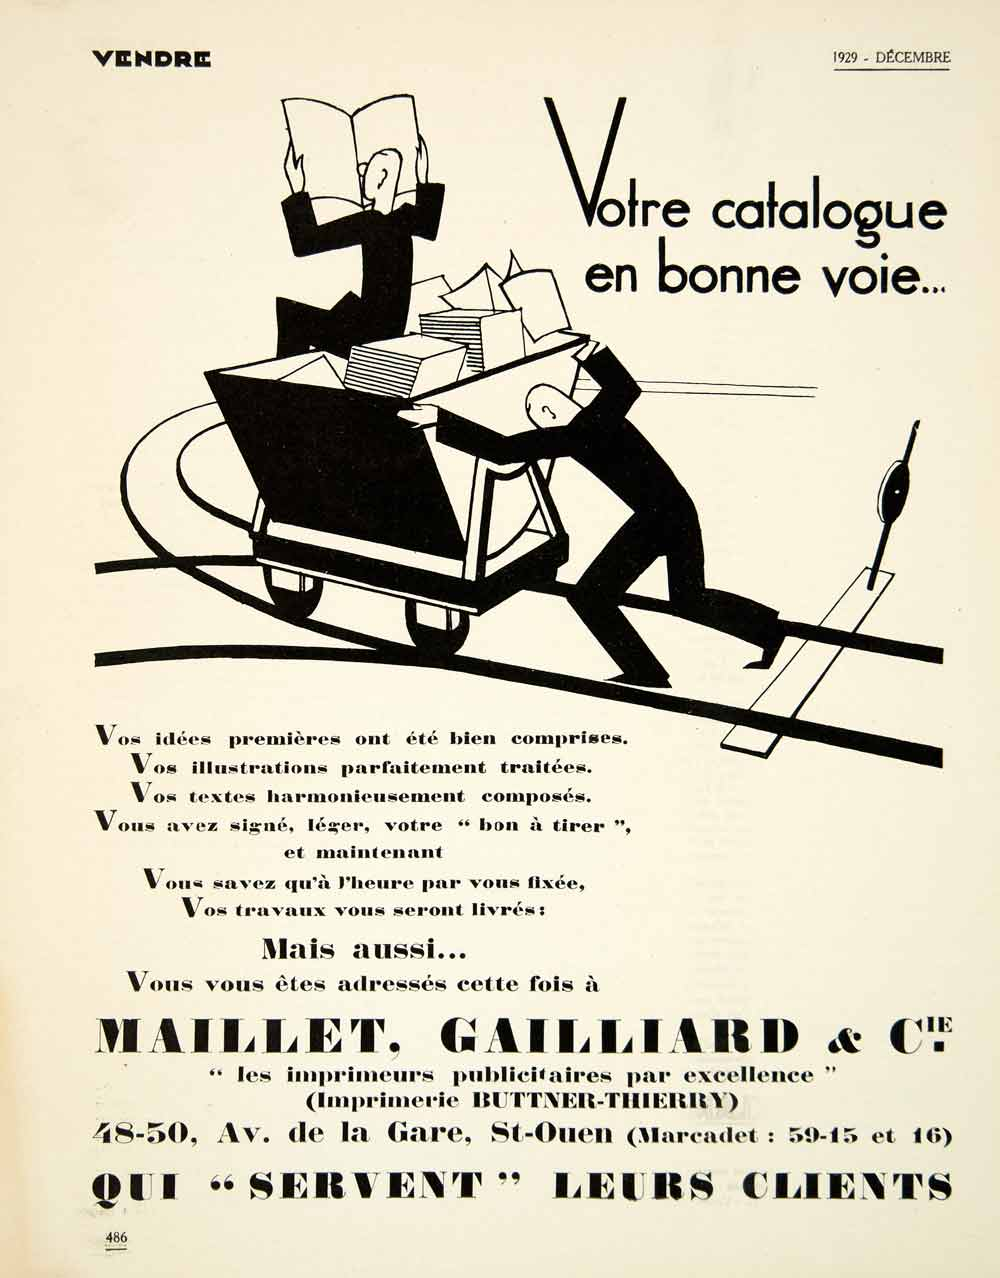 1929 Advertising Maillet Gailliard Buttner-Thierry St Ouen French Printing VENA3